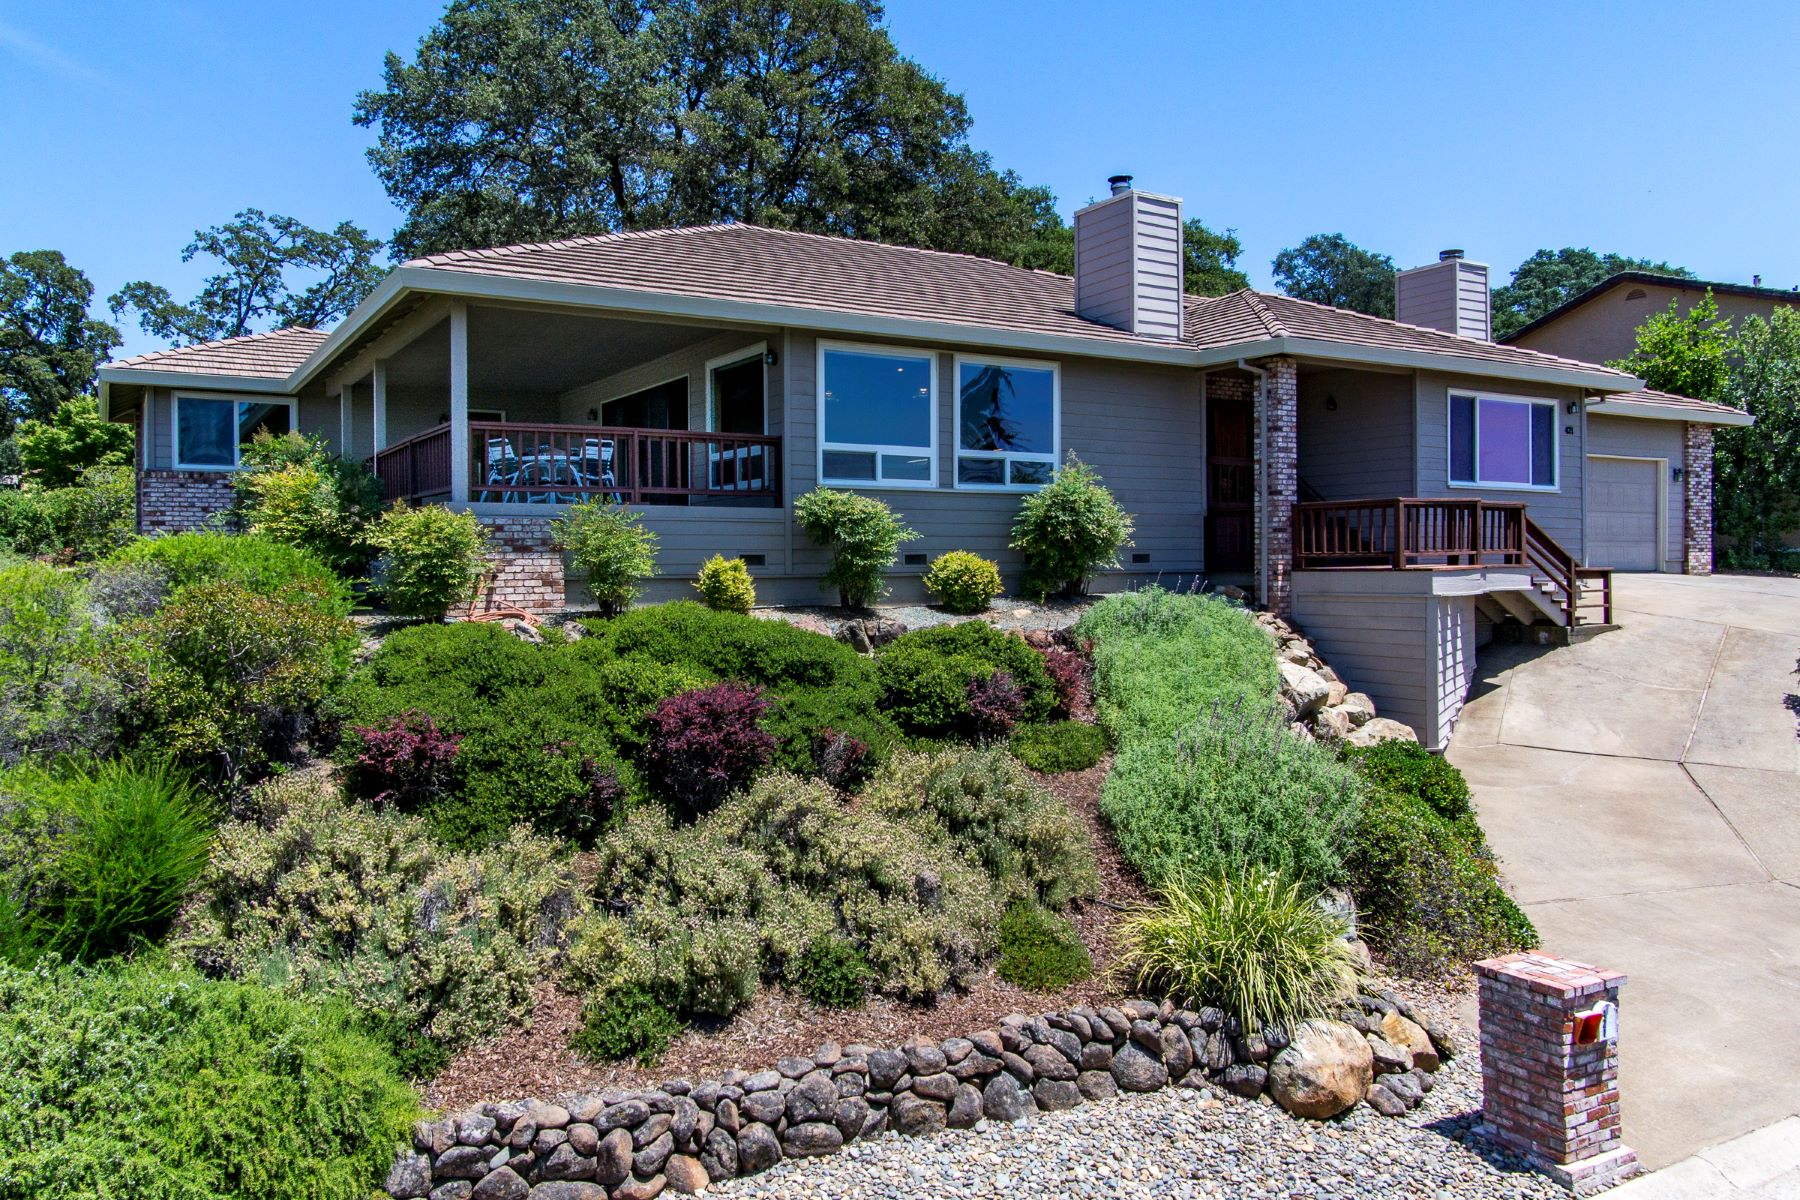 Single Family Home for Sale at Amazing Folsom Lake Views 421 Powers Drive El Dorado Hills, California 95762 United States